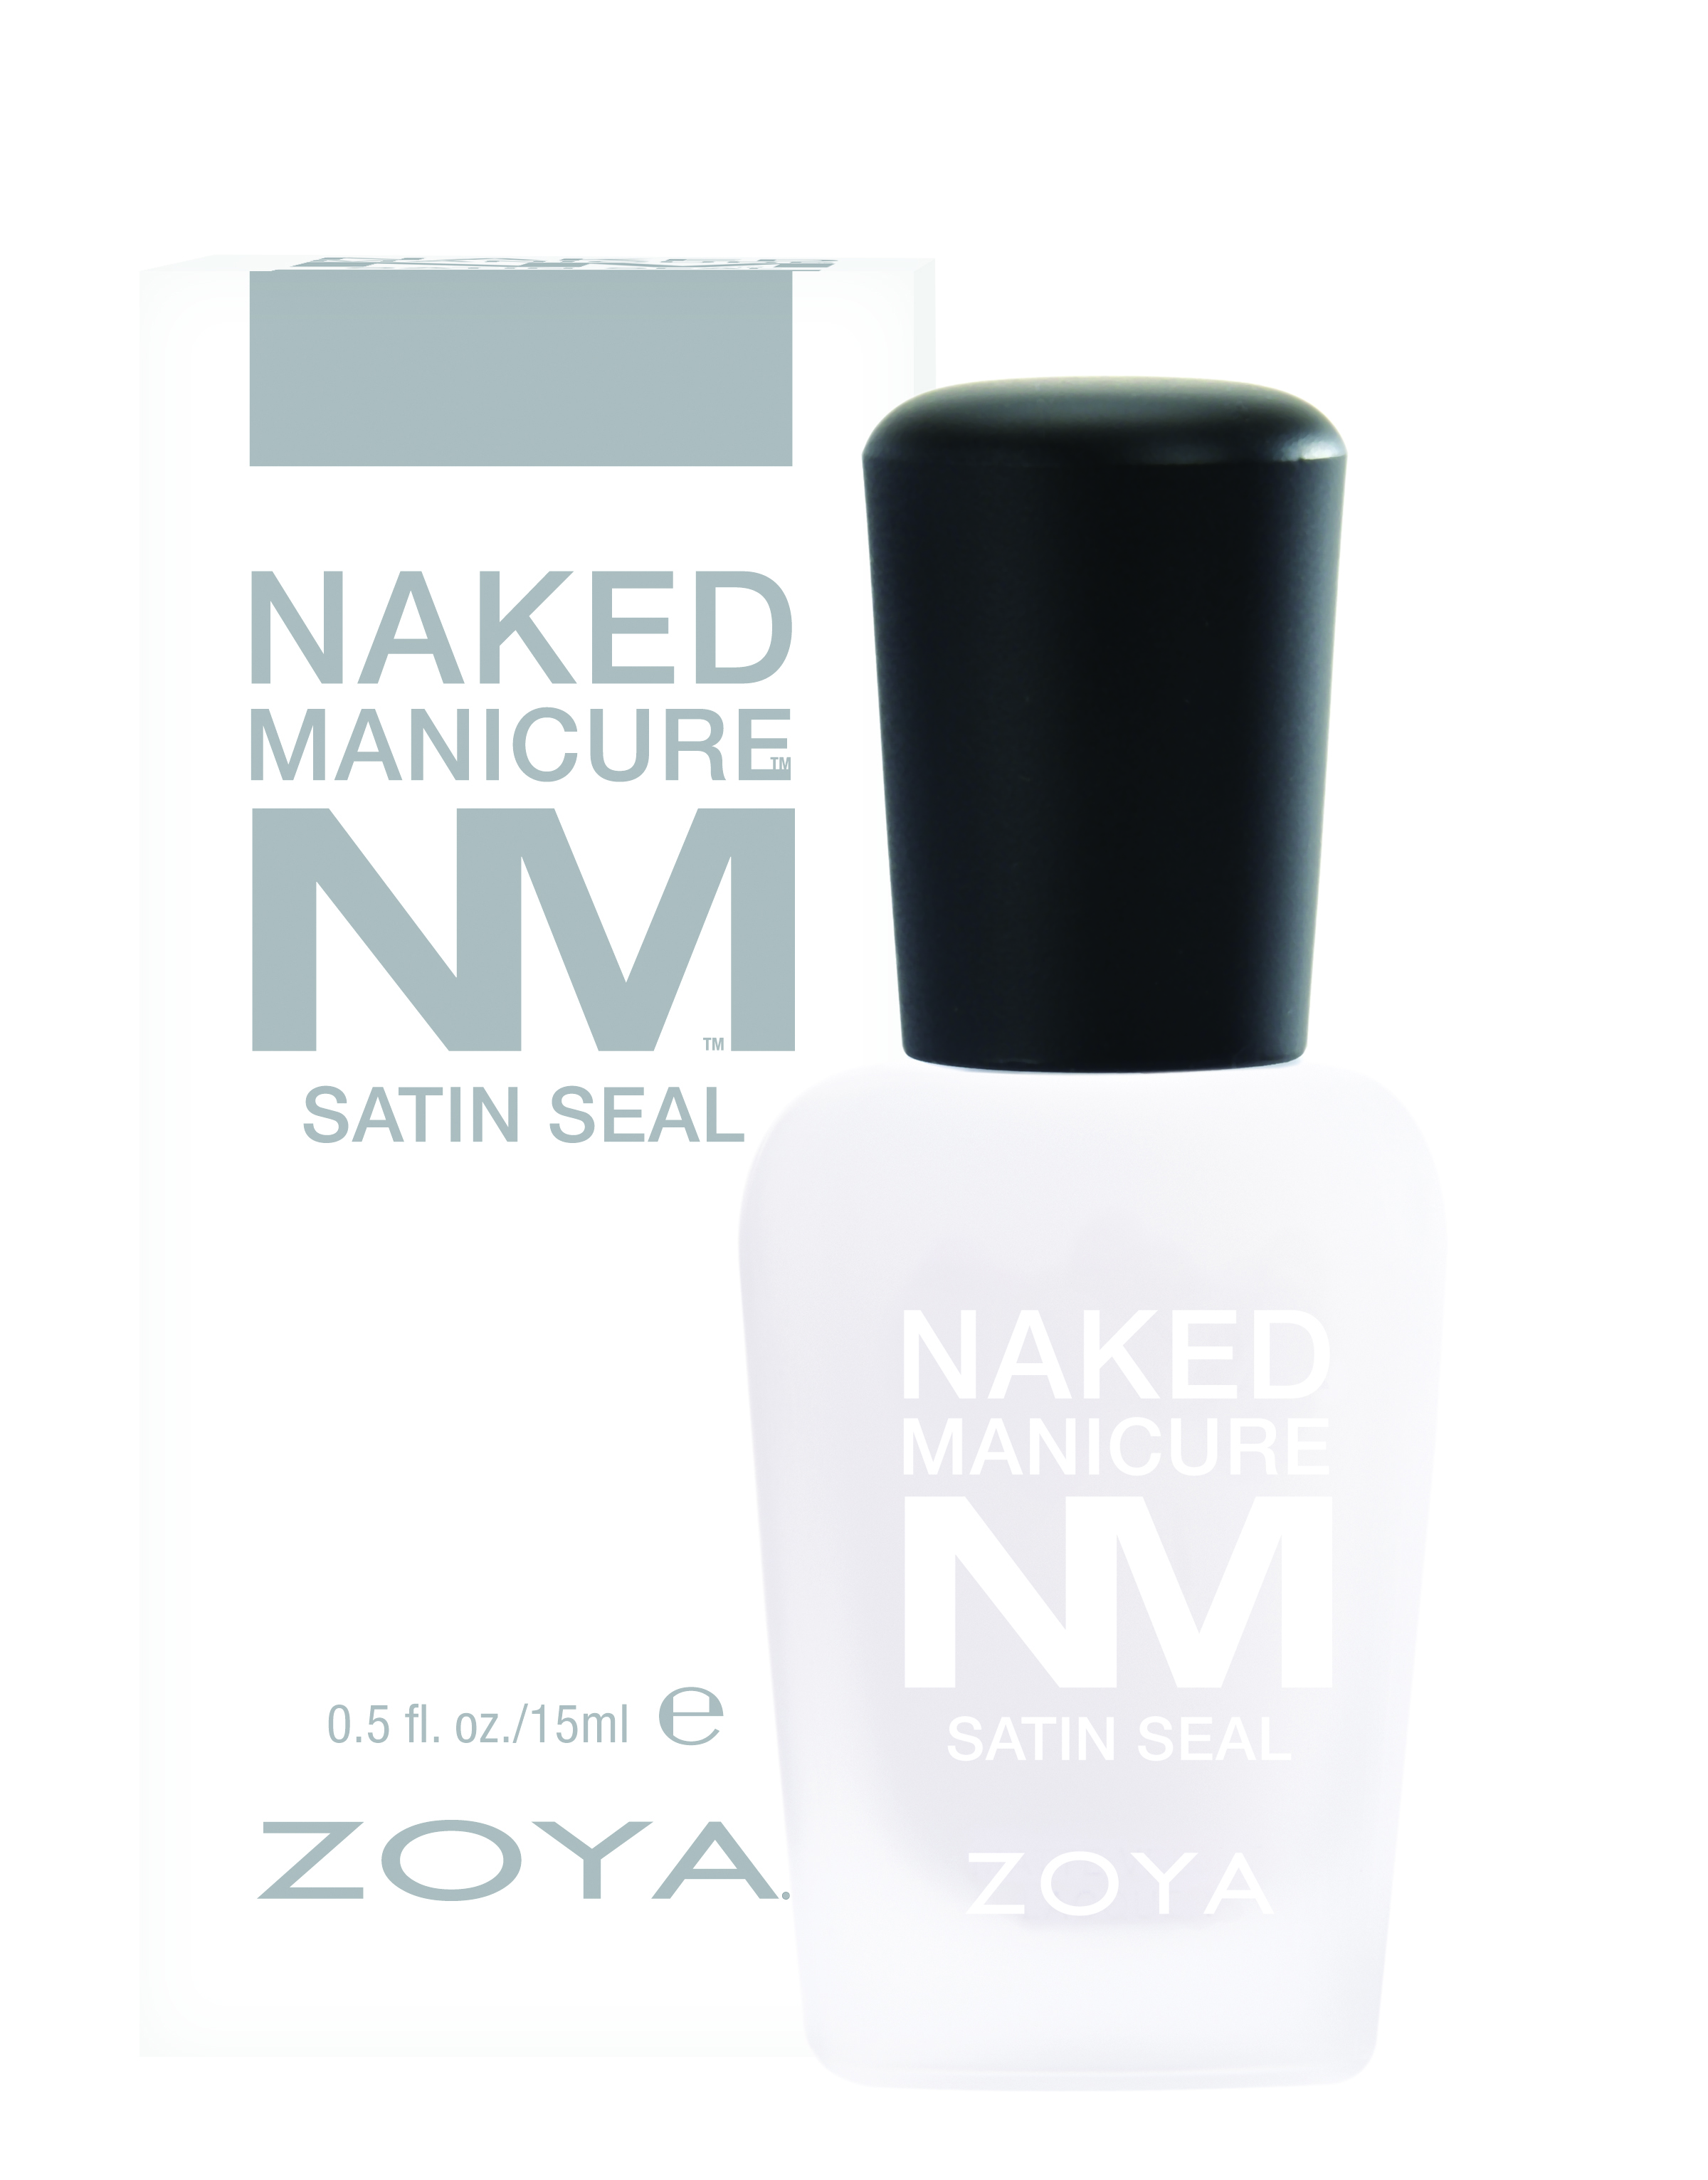 Naked Manicure Satin Seal 7.5ml product impression